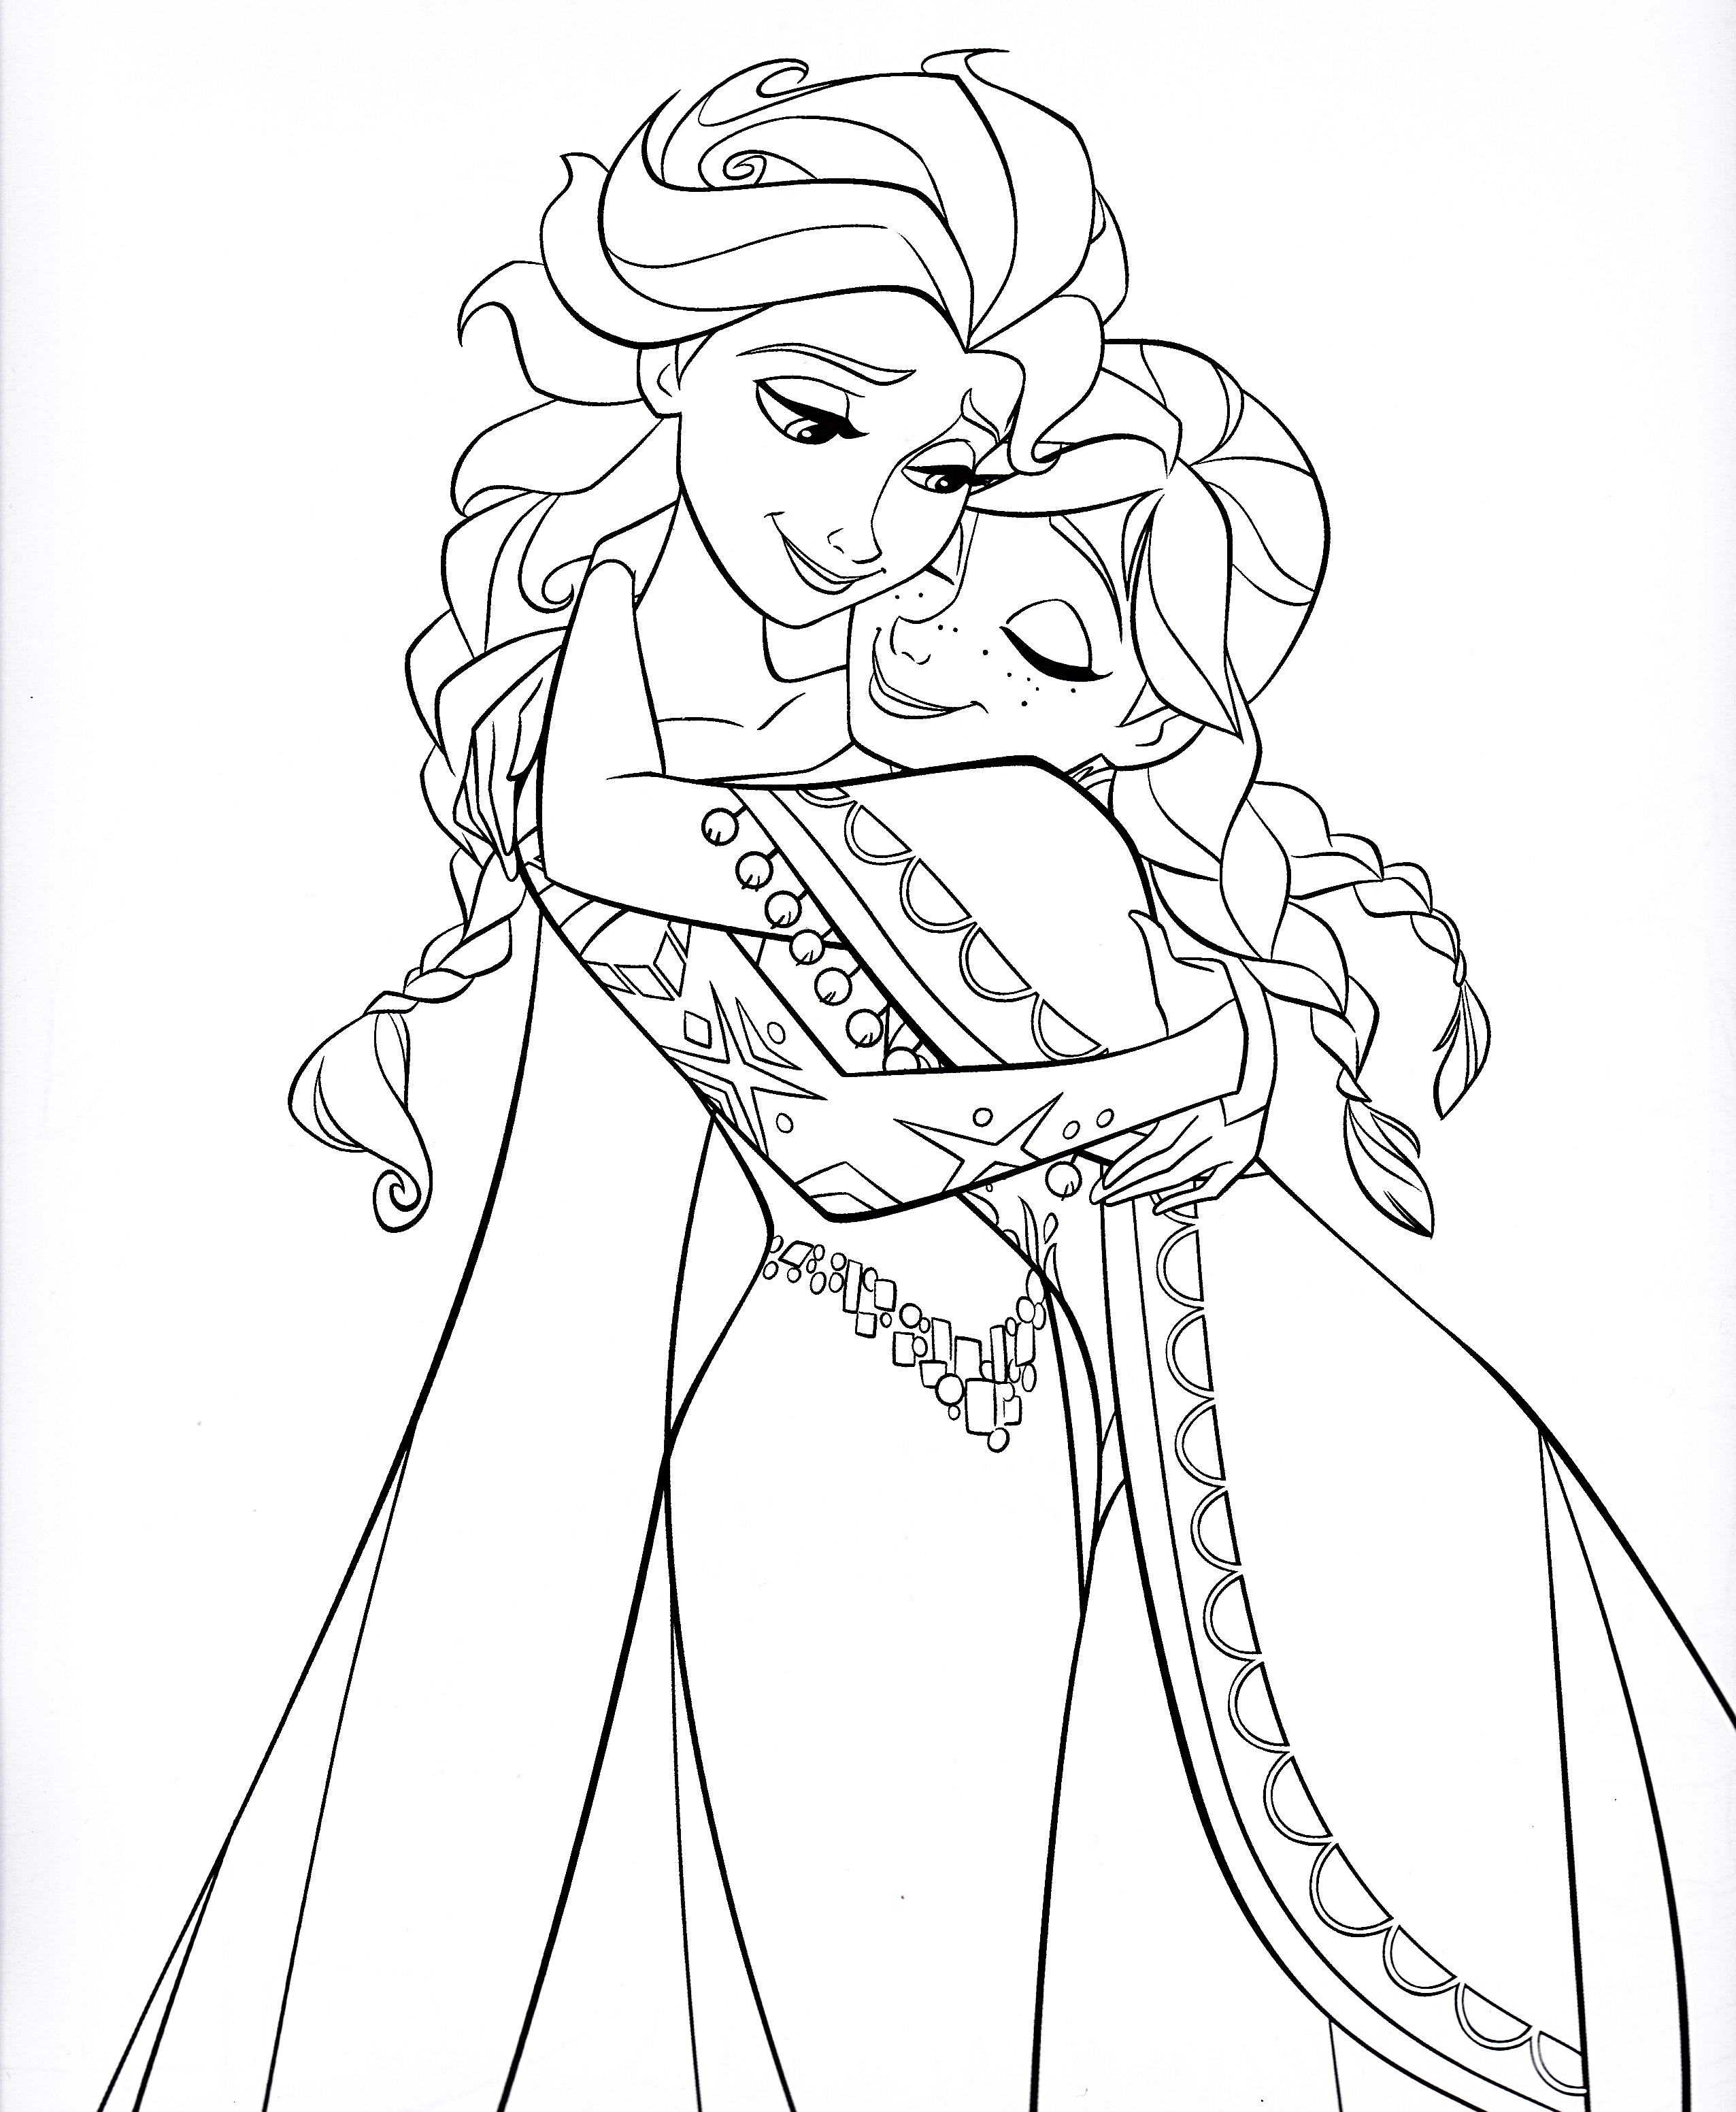 Coloring Pages Frozen Disney : Free printable coloring pages disney frozen